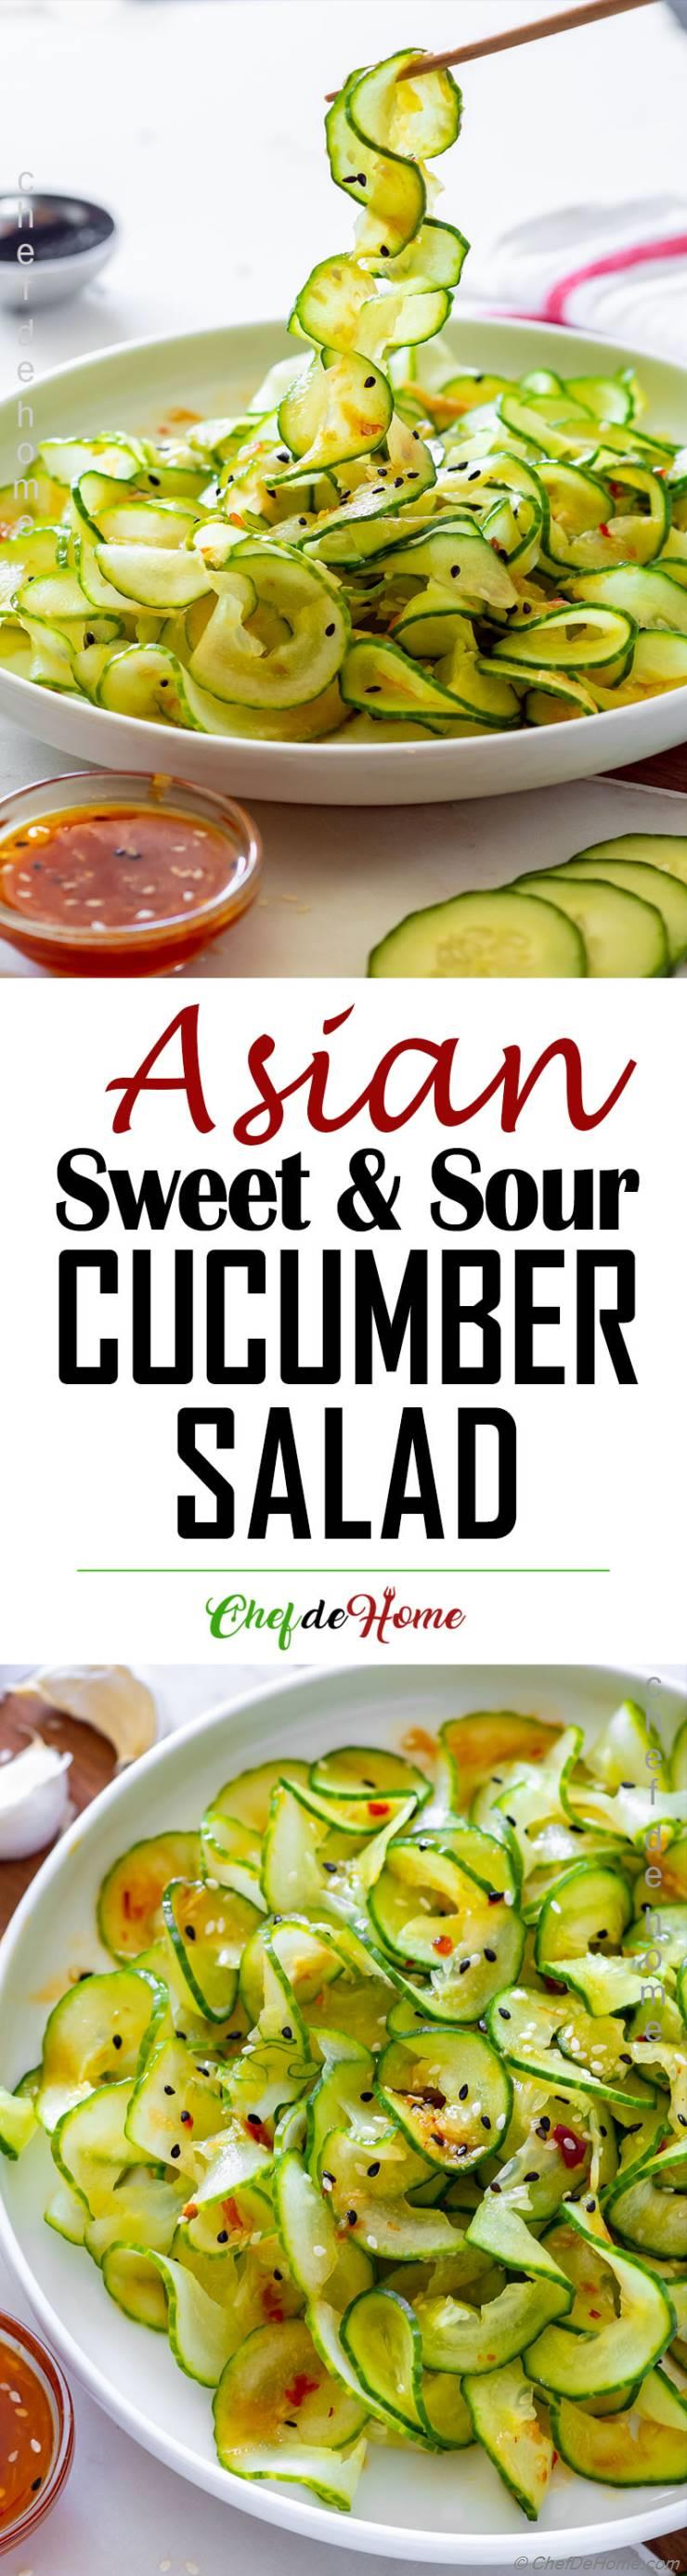 Asian Cucumber Salad vinegar dressing makes sweet and sour salad